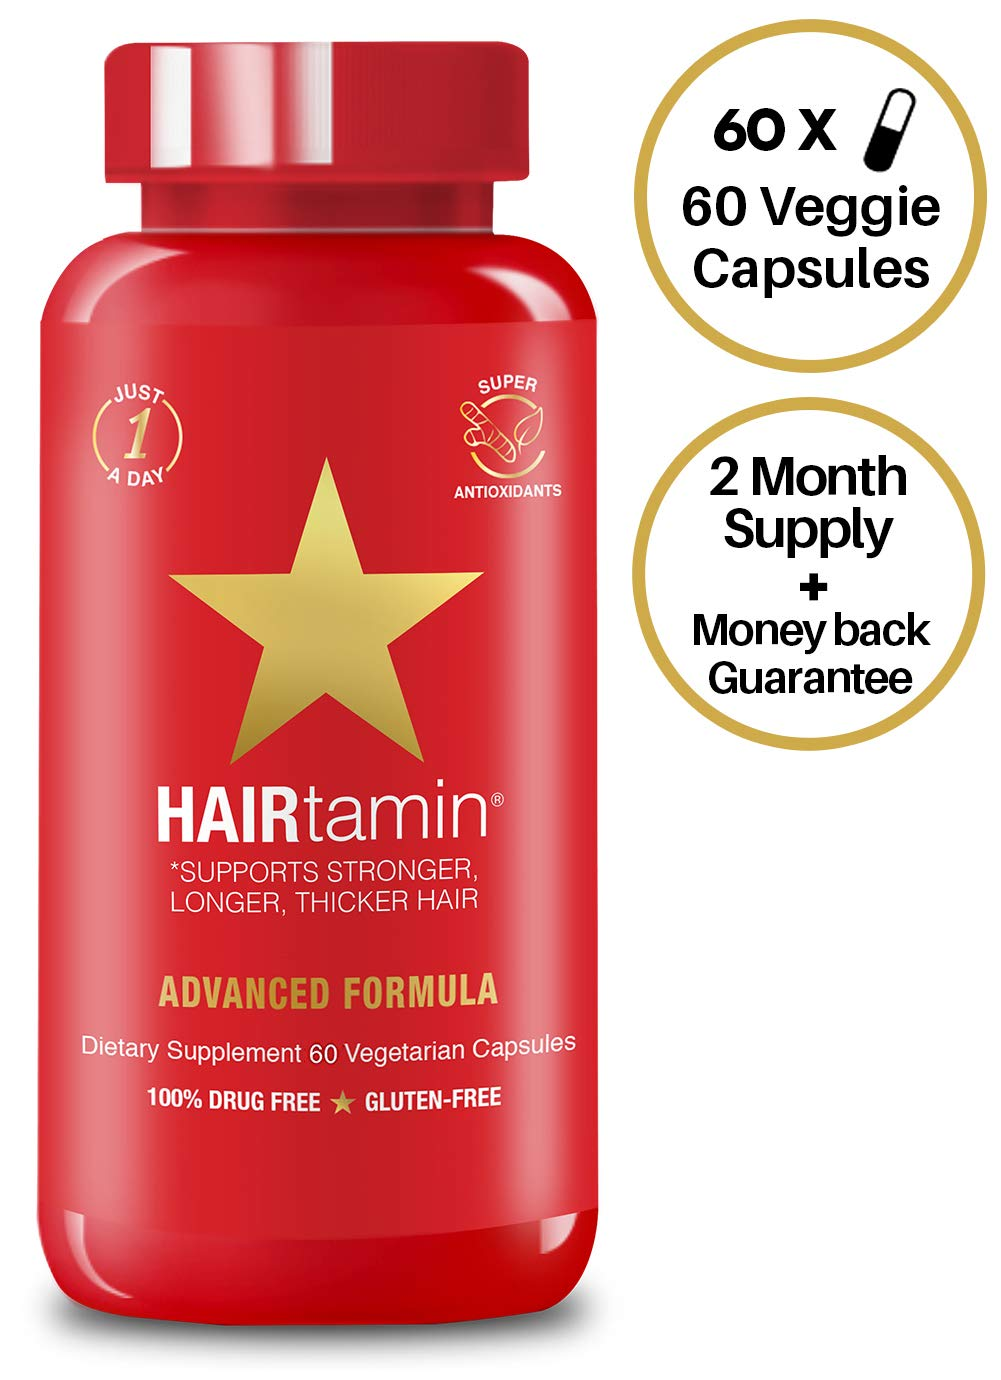 HAIRtamin Biotin Hair Growth Vitamins - Best Hair Skin and Nails Vitamins, All Natural Daily Multi-Vitamin Supplements for Thicker Fuller Healthy Hair, Strong Nails, Skin (2 Month Supply, 1-A-Day)